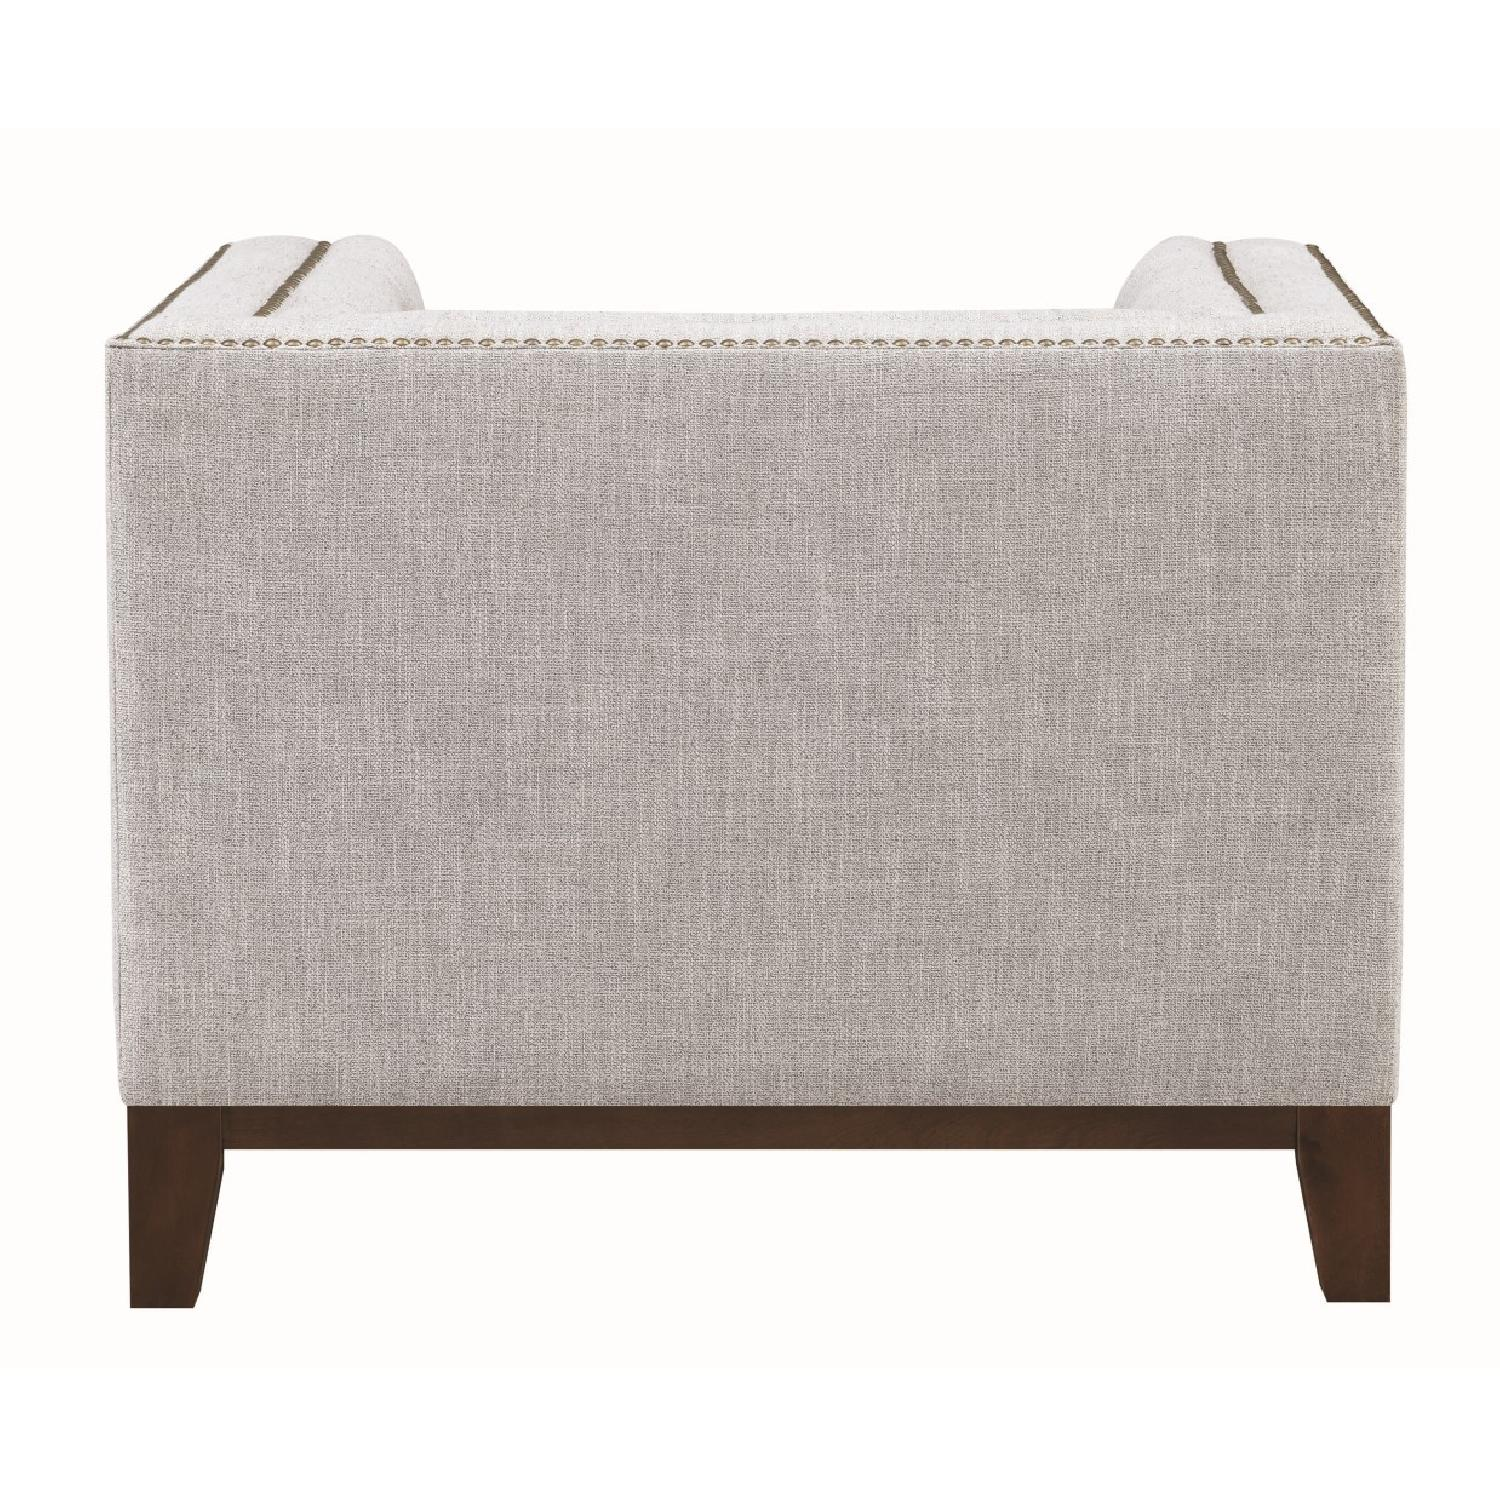 Modern Style Sofa w/ Tufted Buttons & Nailhead Accent - image-11